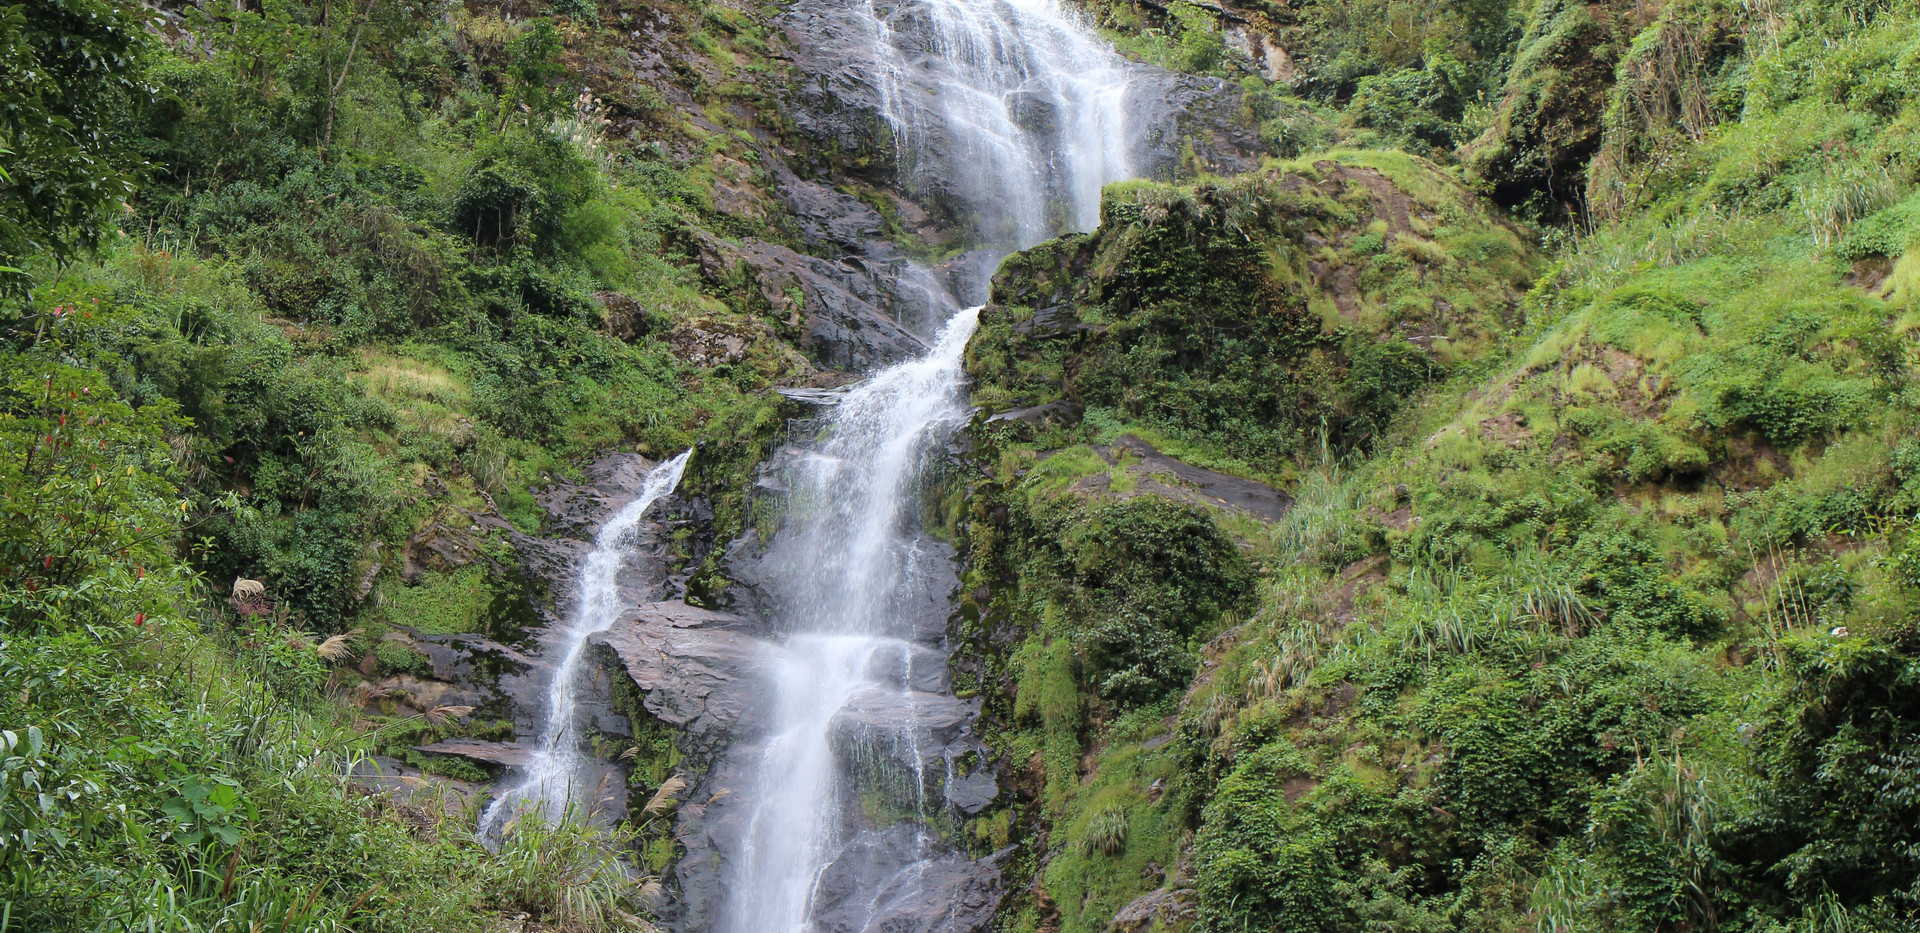 Trek to the picturesque waterfall